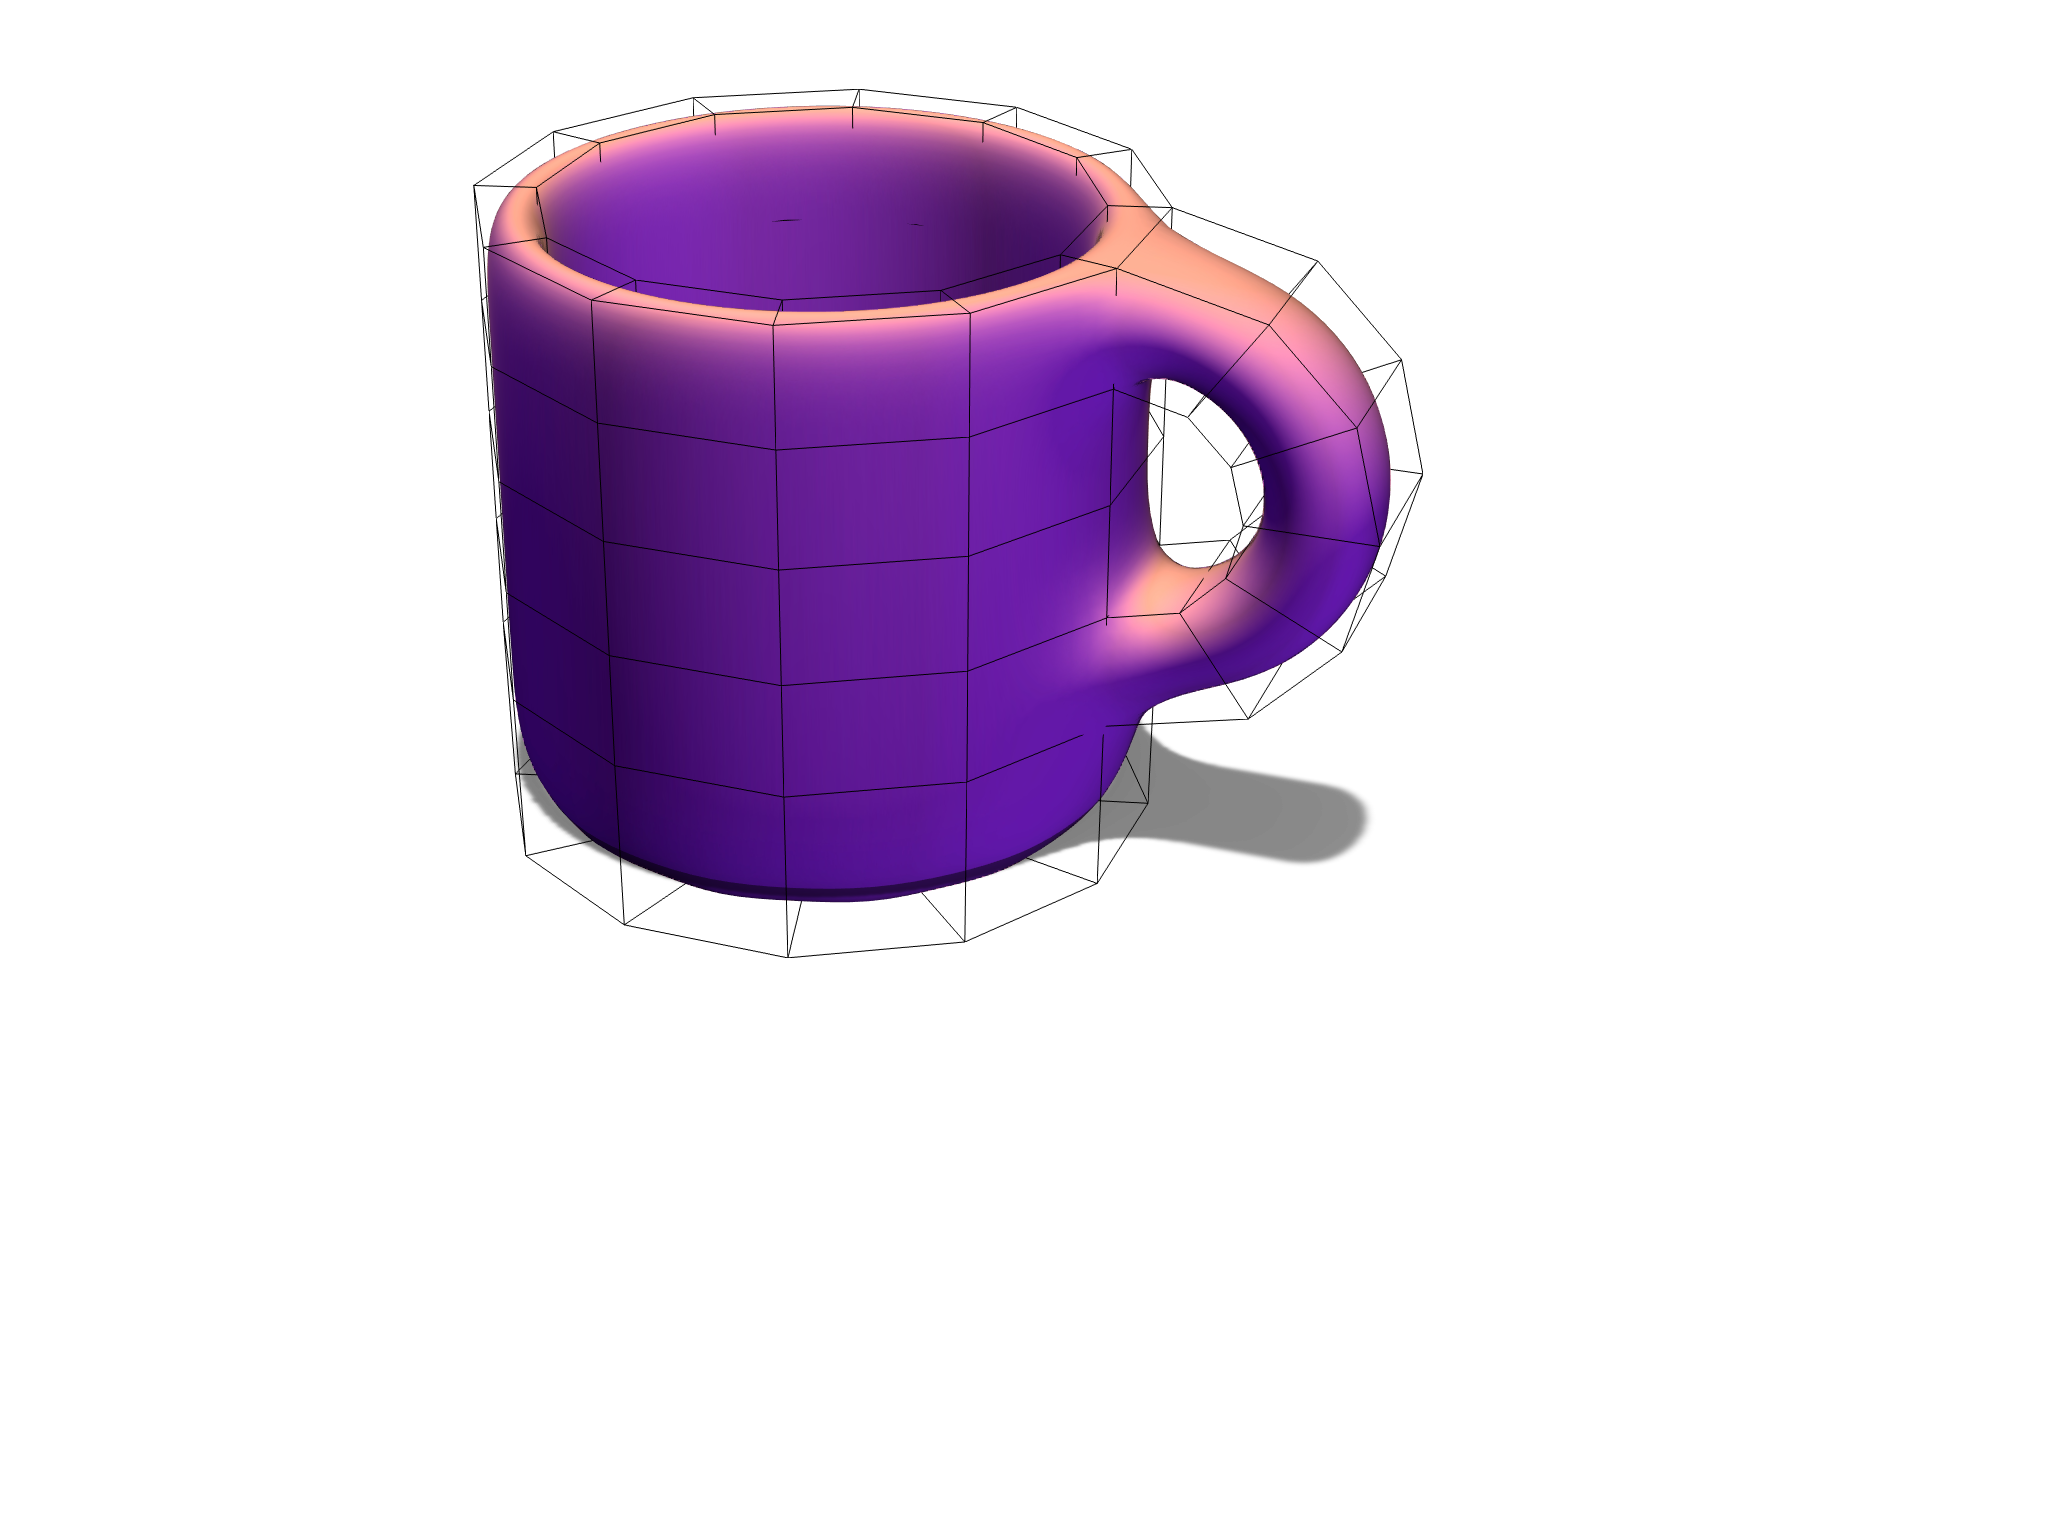 MUG - 3D design by Momo Arbeit Mar 29, 2018